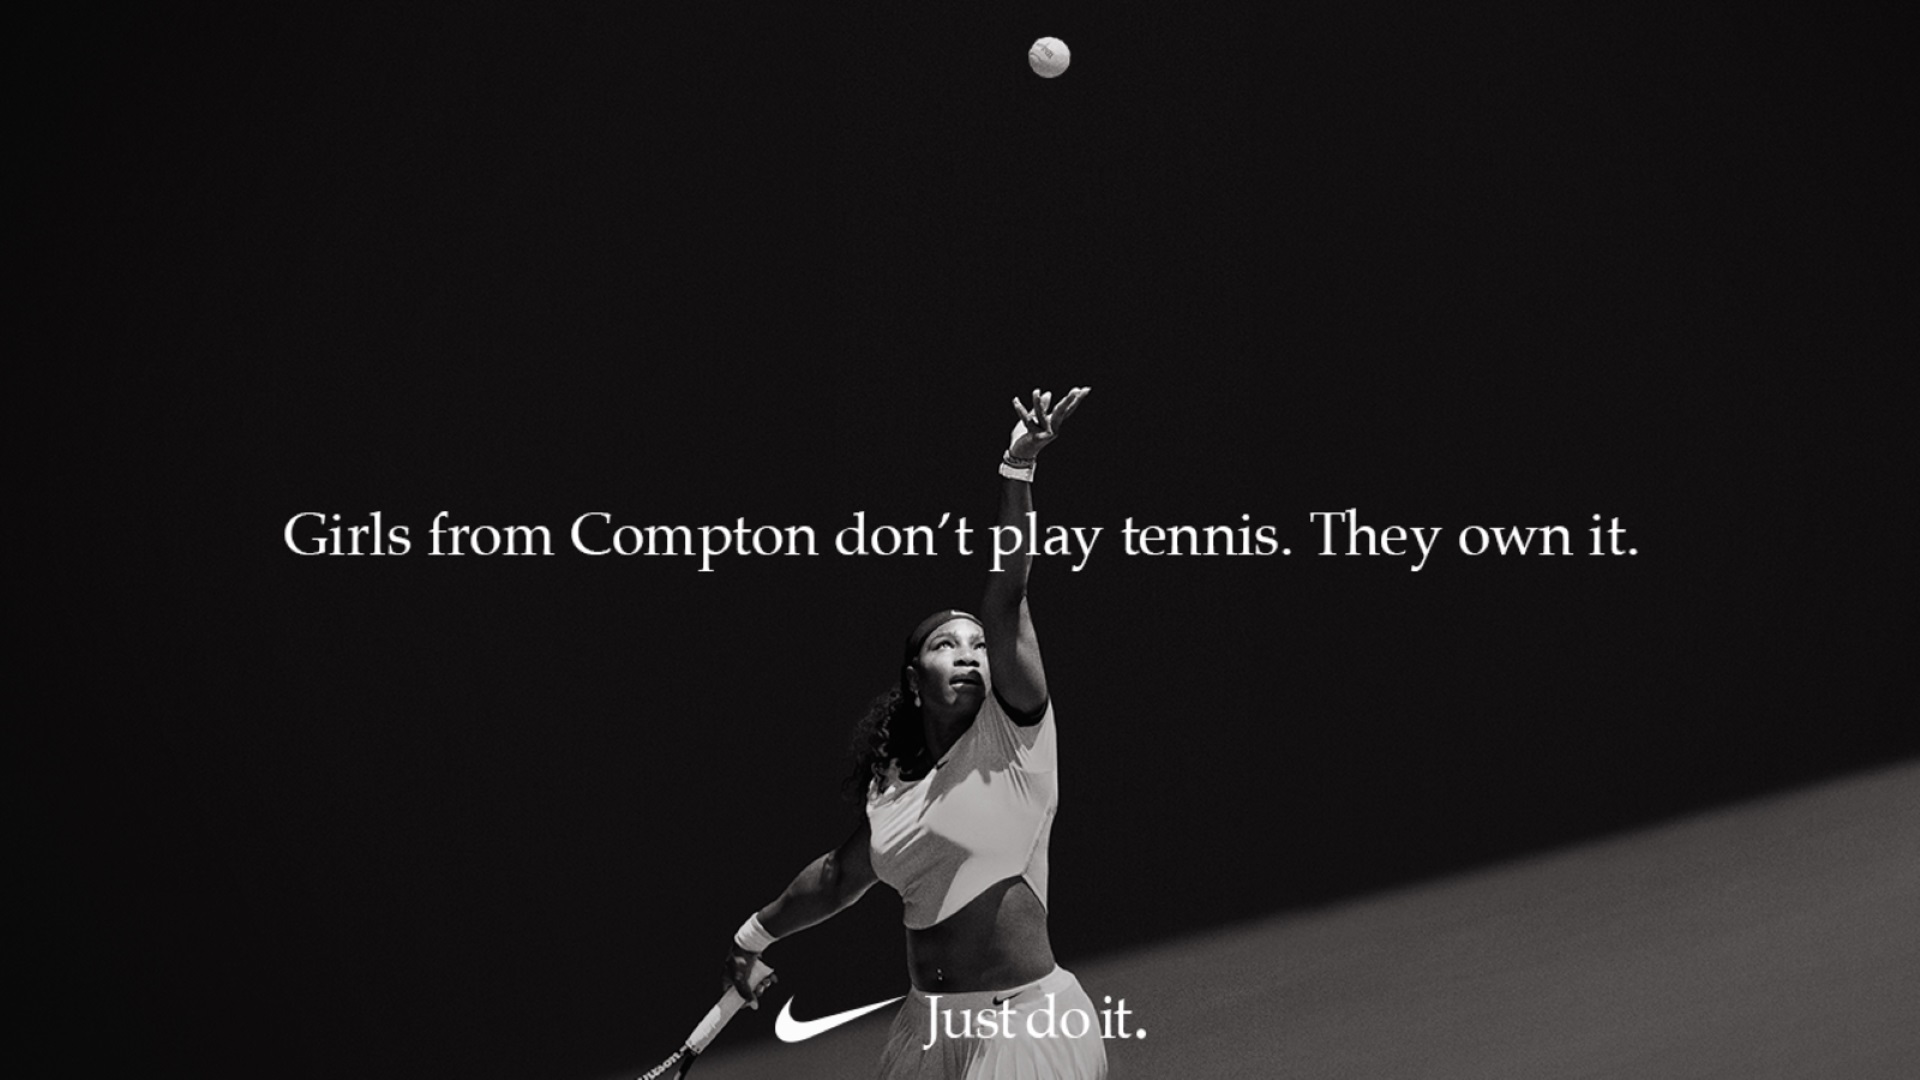 Just do it_Serena Williams